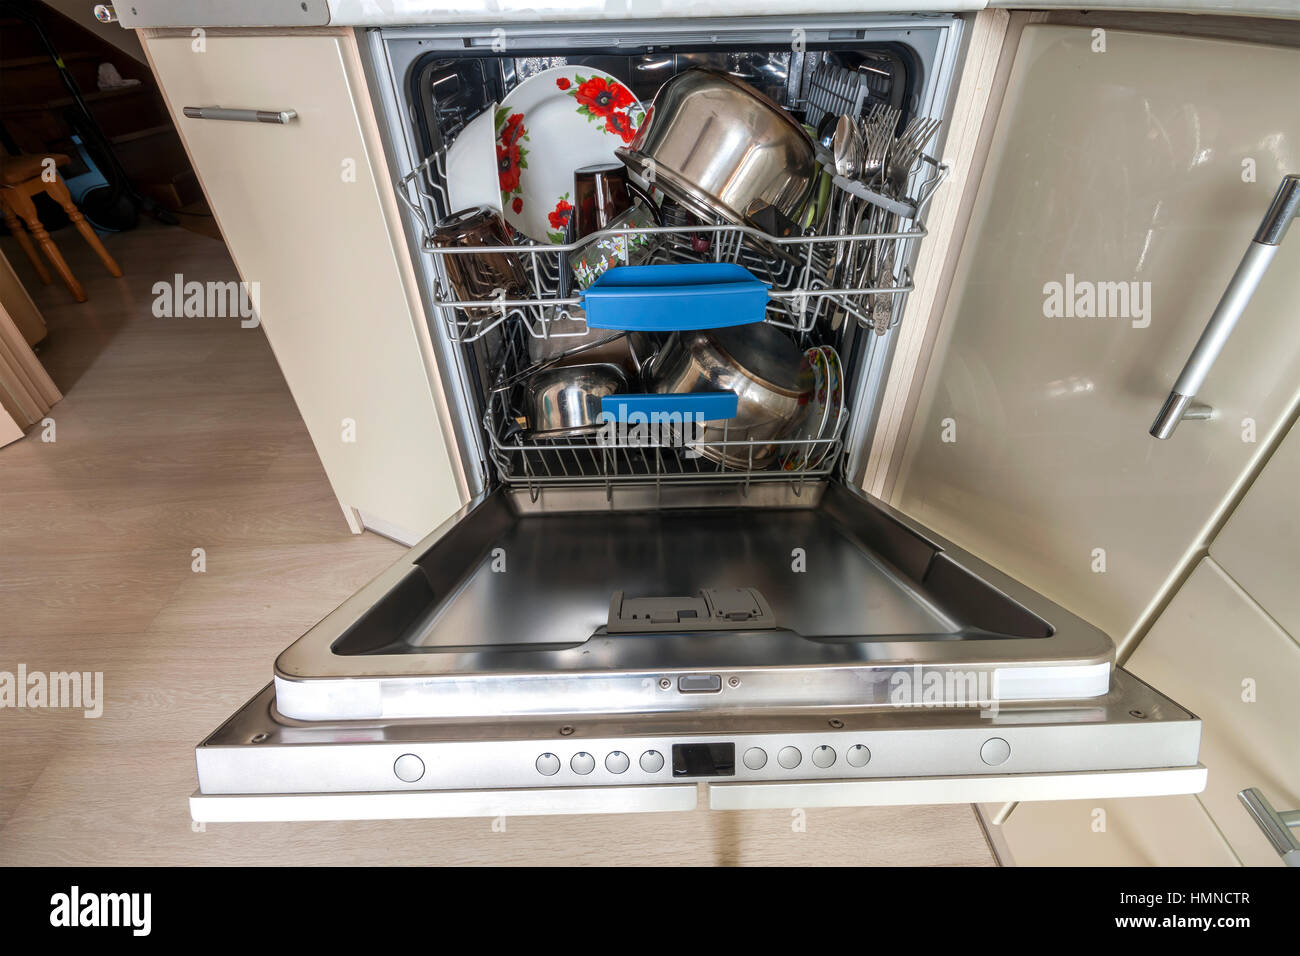 Build In Dishwasher With Opened Door With Clean Glass And Dishes In Modern  Kitchen, Selective Focus